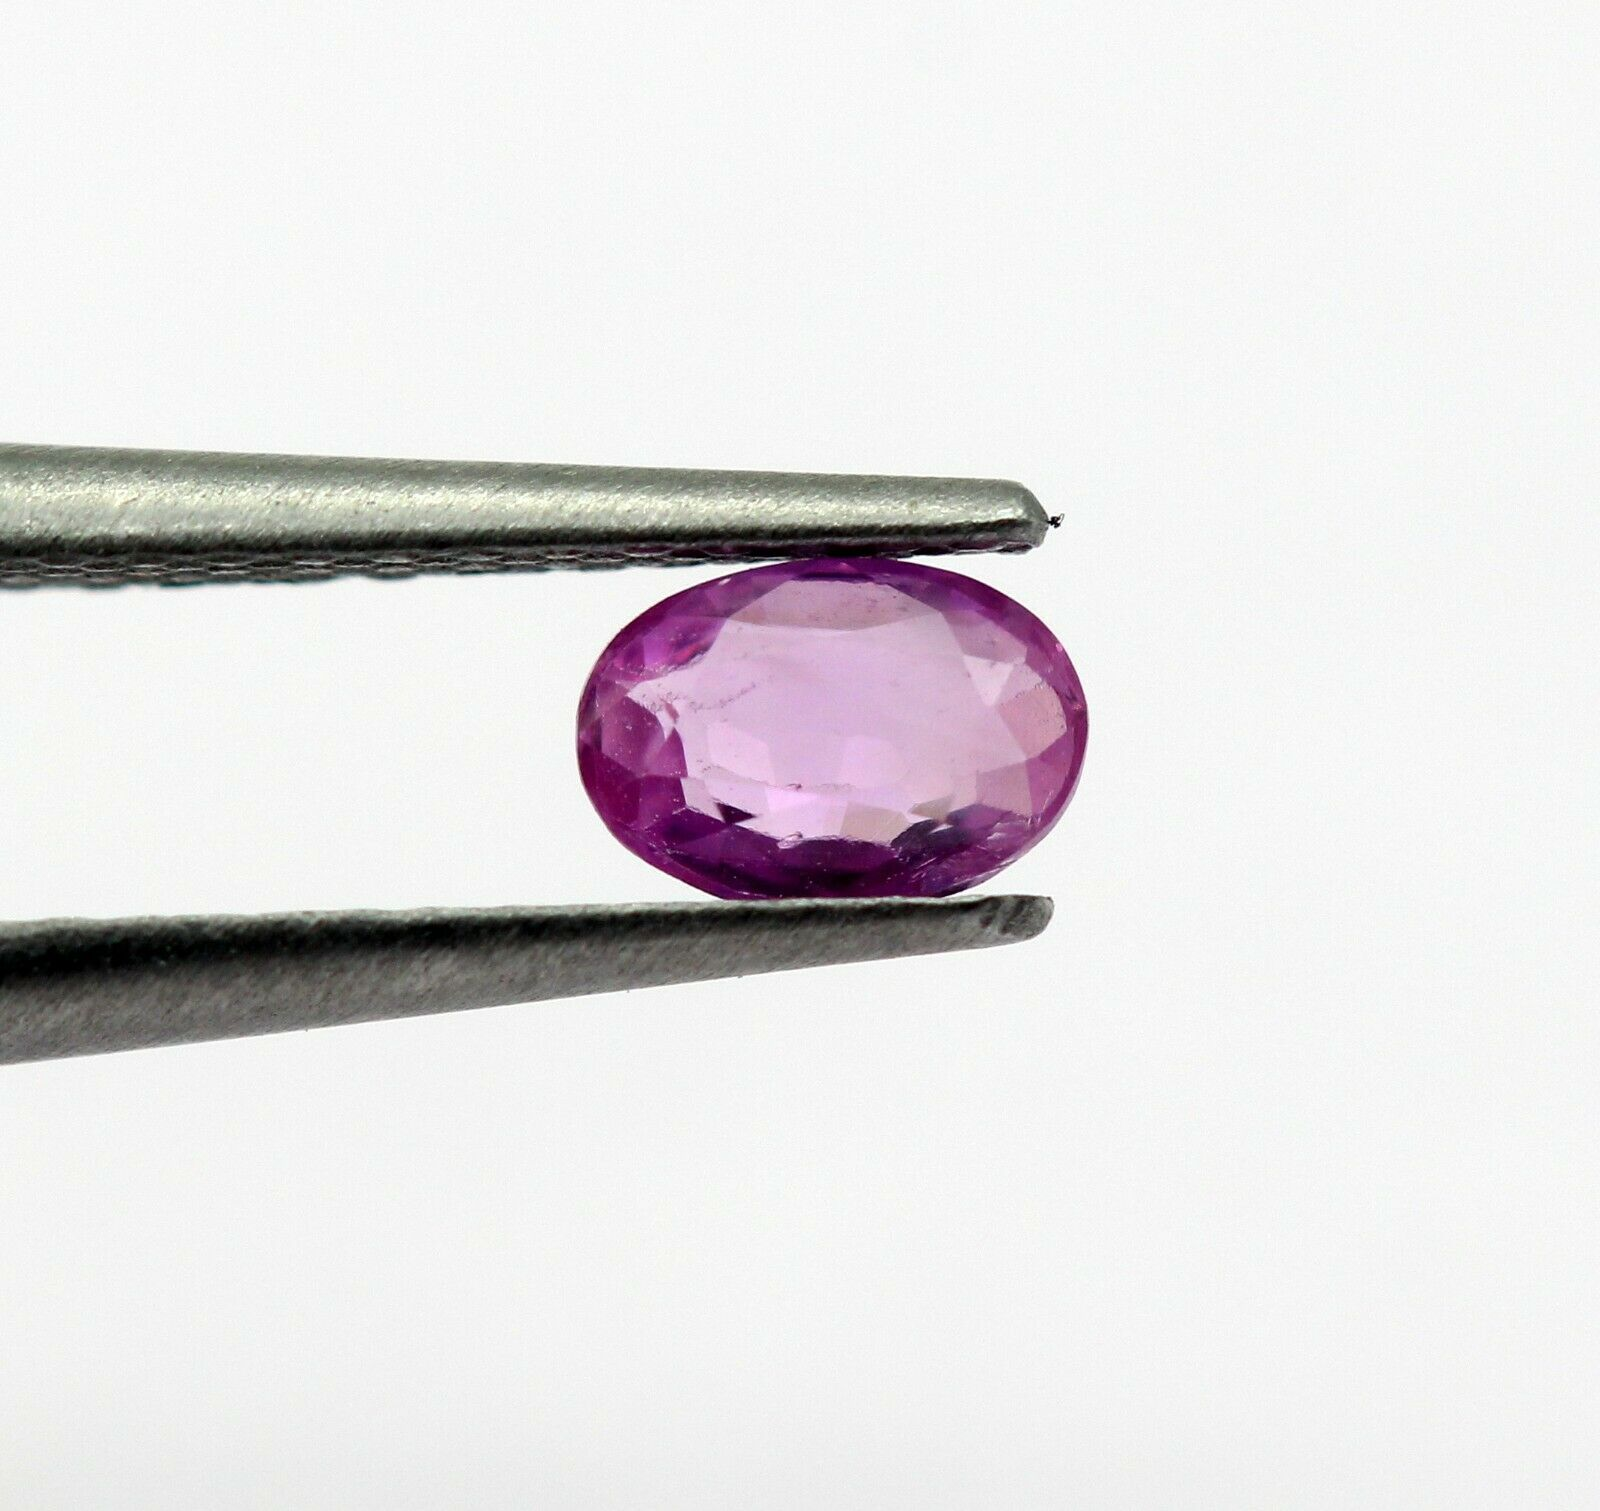 0.34 Ct Pink Sapphire Oval Natural Gemstone Light Pink Color Sri Lankan Birthstone Certified